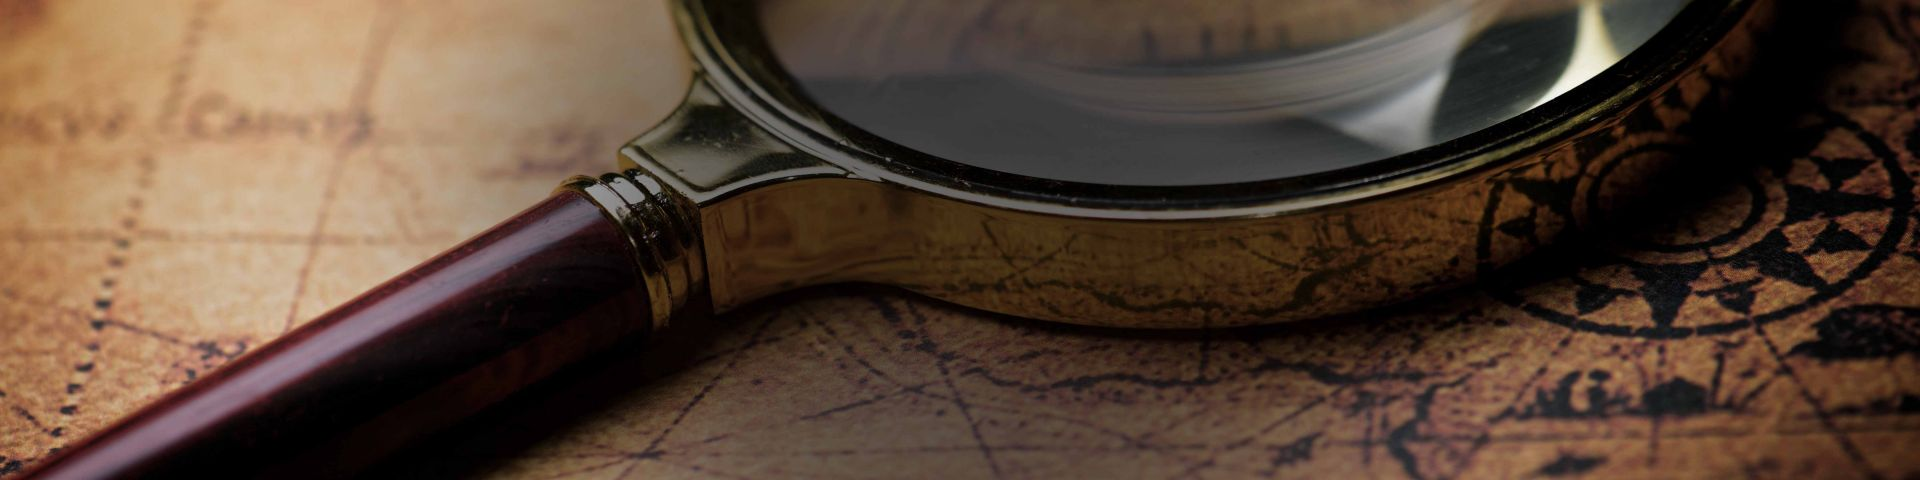 Portfolio_ Magnifying glass.jpg